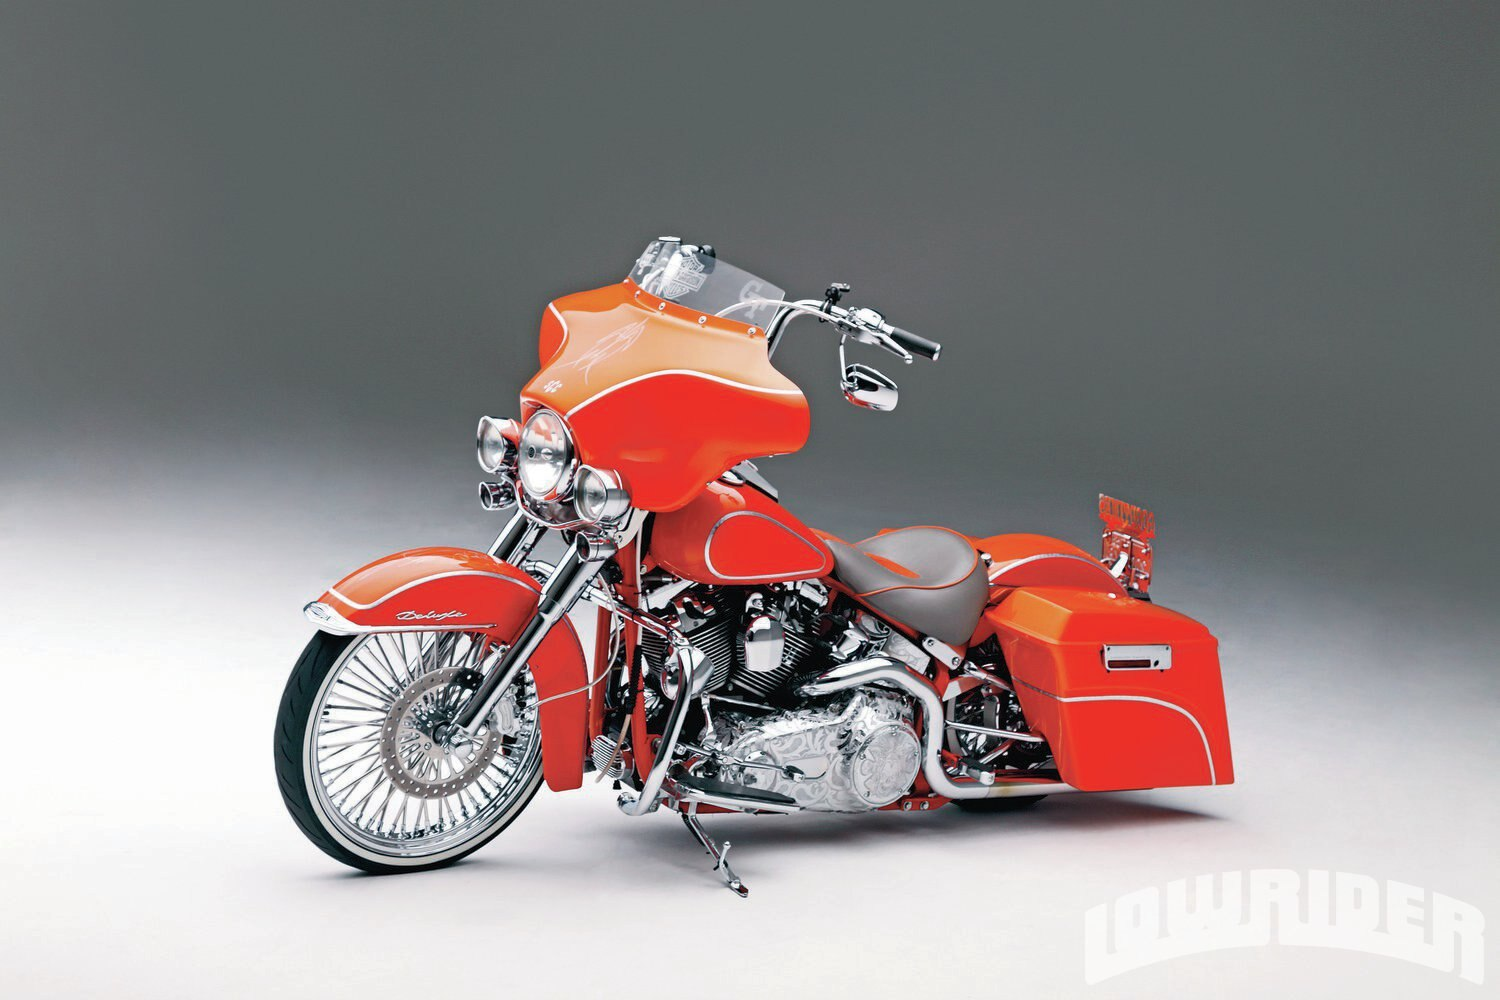 2008-harley-davidson-softail-deluxe-front-left-side-view1